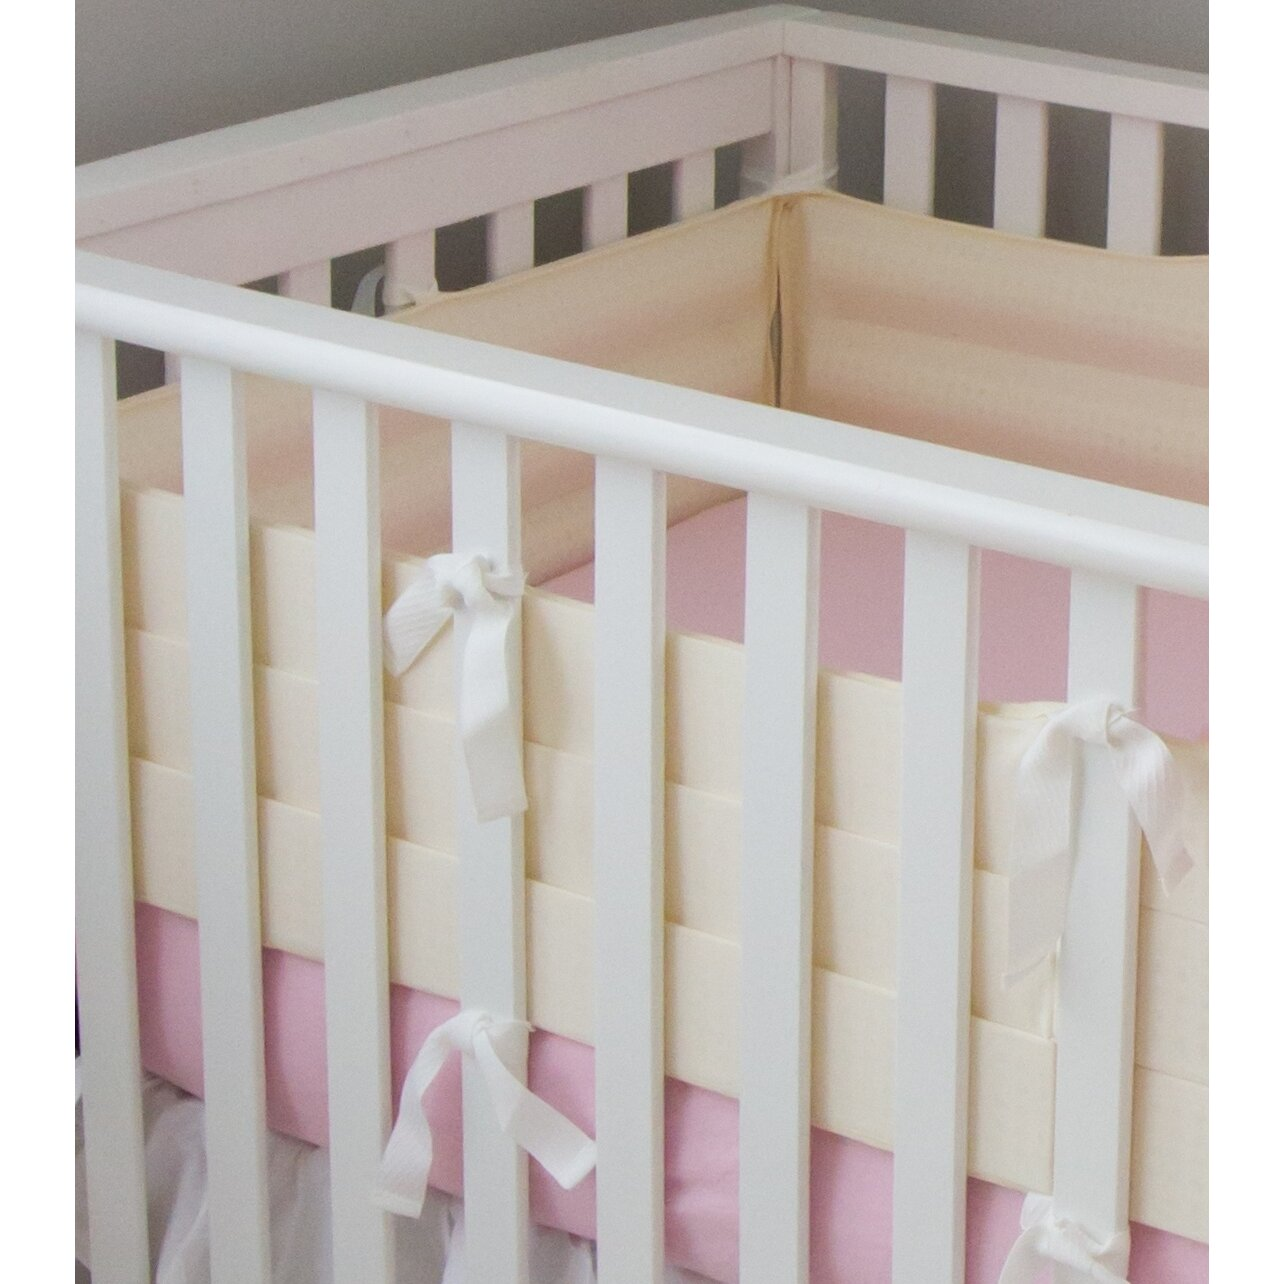 Safest brand of crib for babies - Bitzy Baby Breathable Safe Crib Bumper